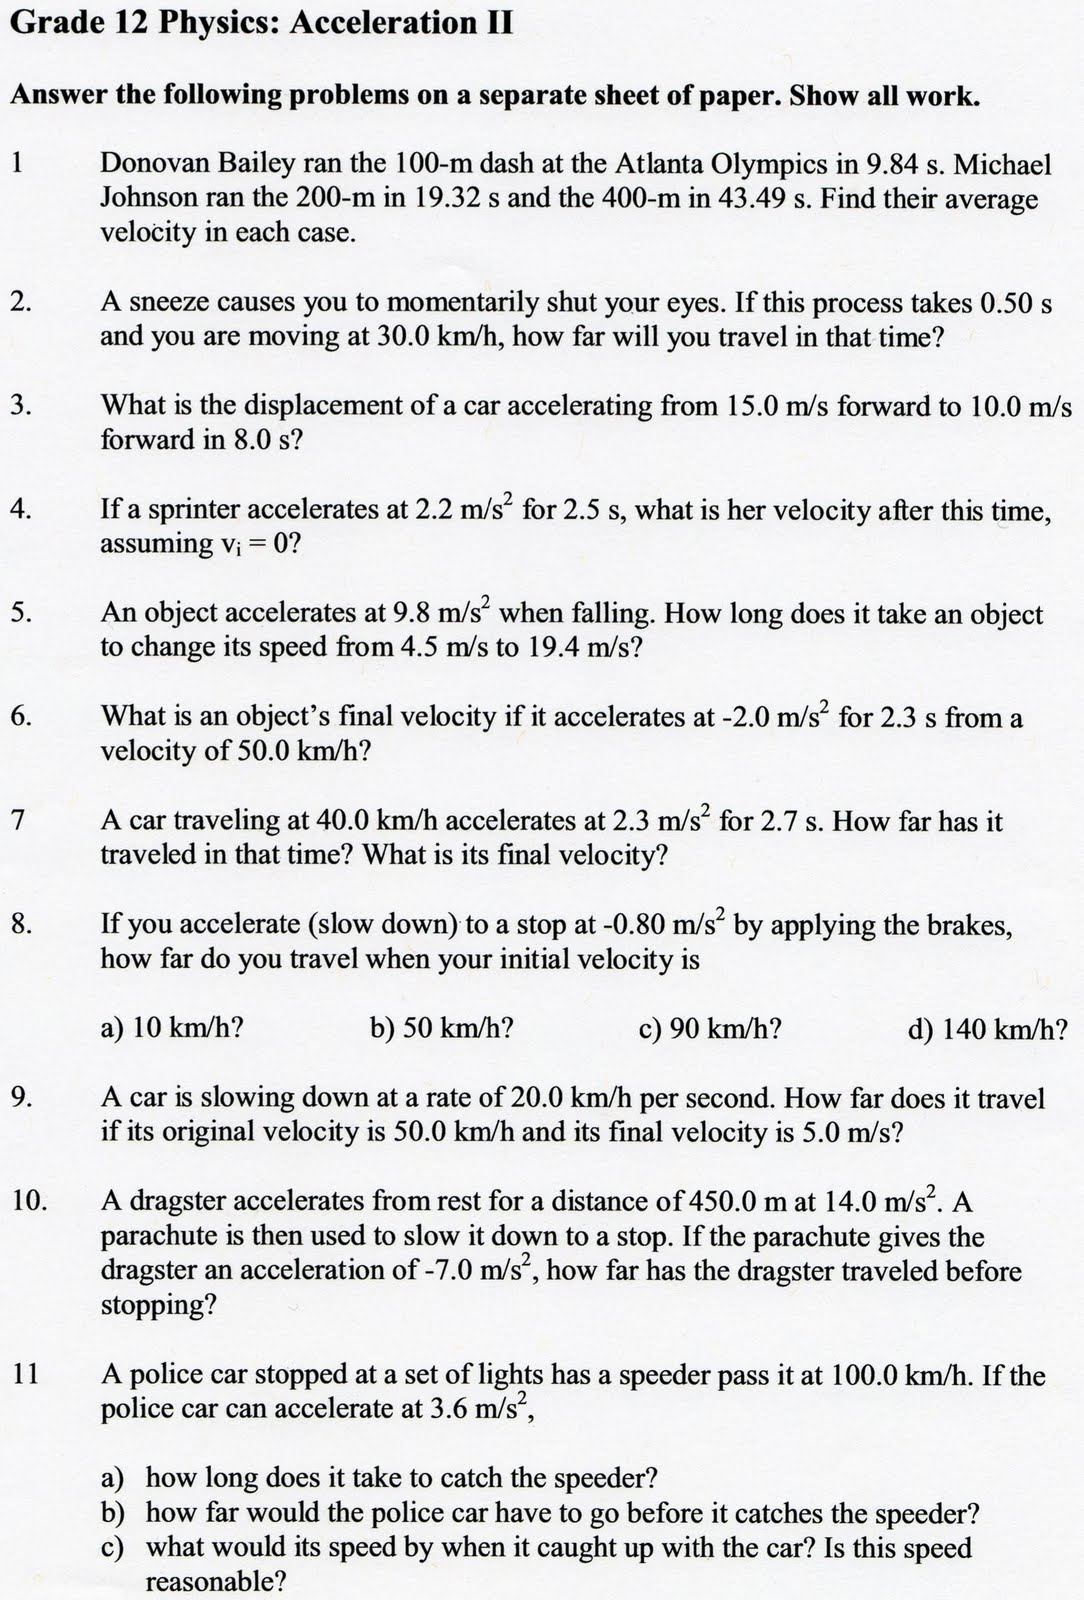 Printables Energy Work And Power Worksheet Answer Key work energy and power worksheet answers abitlikethis mr trasks unit 7 work